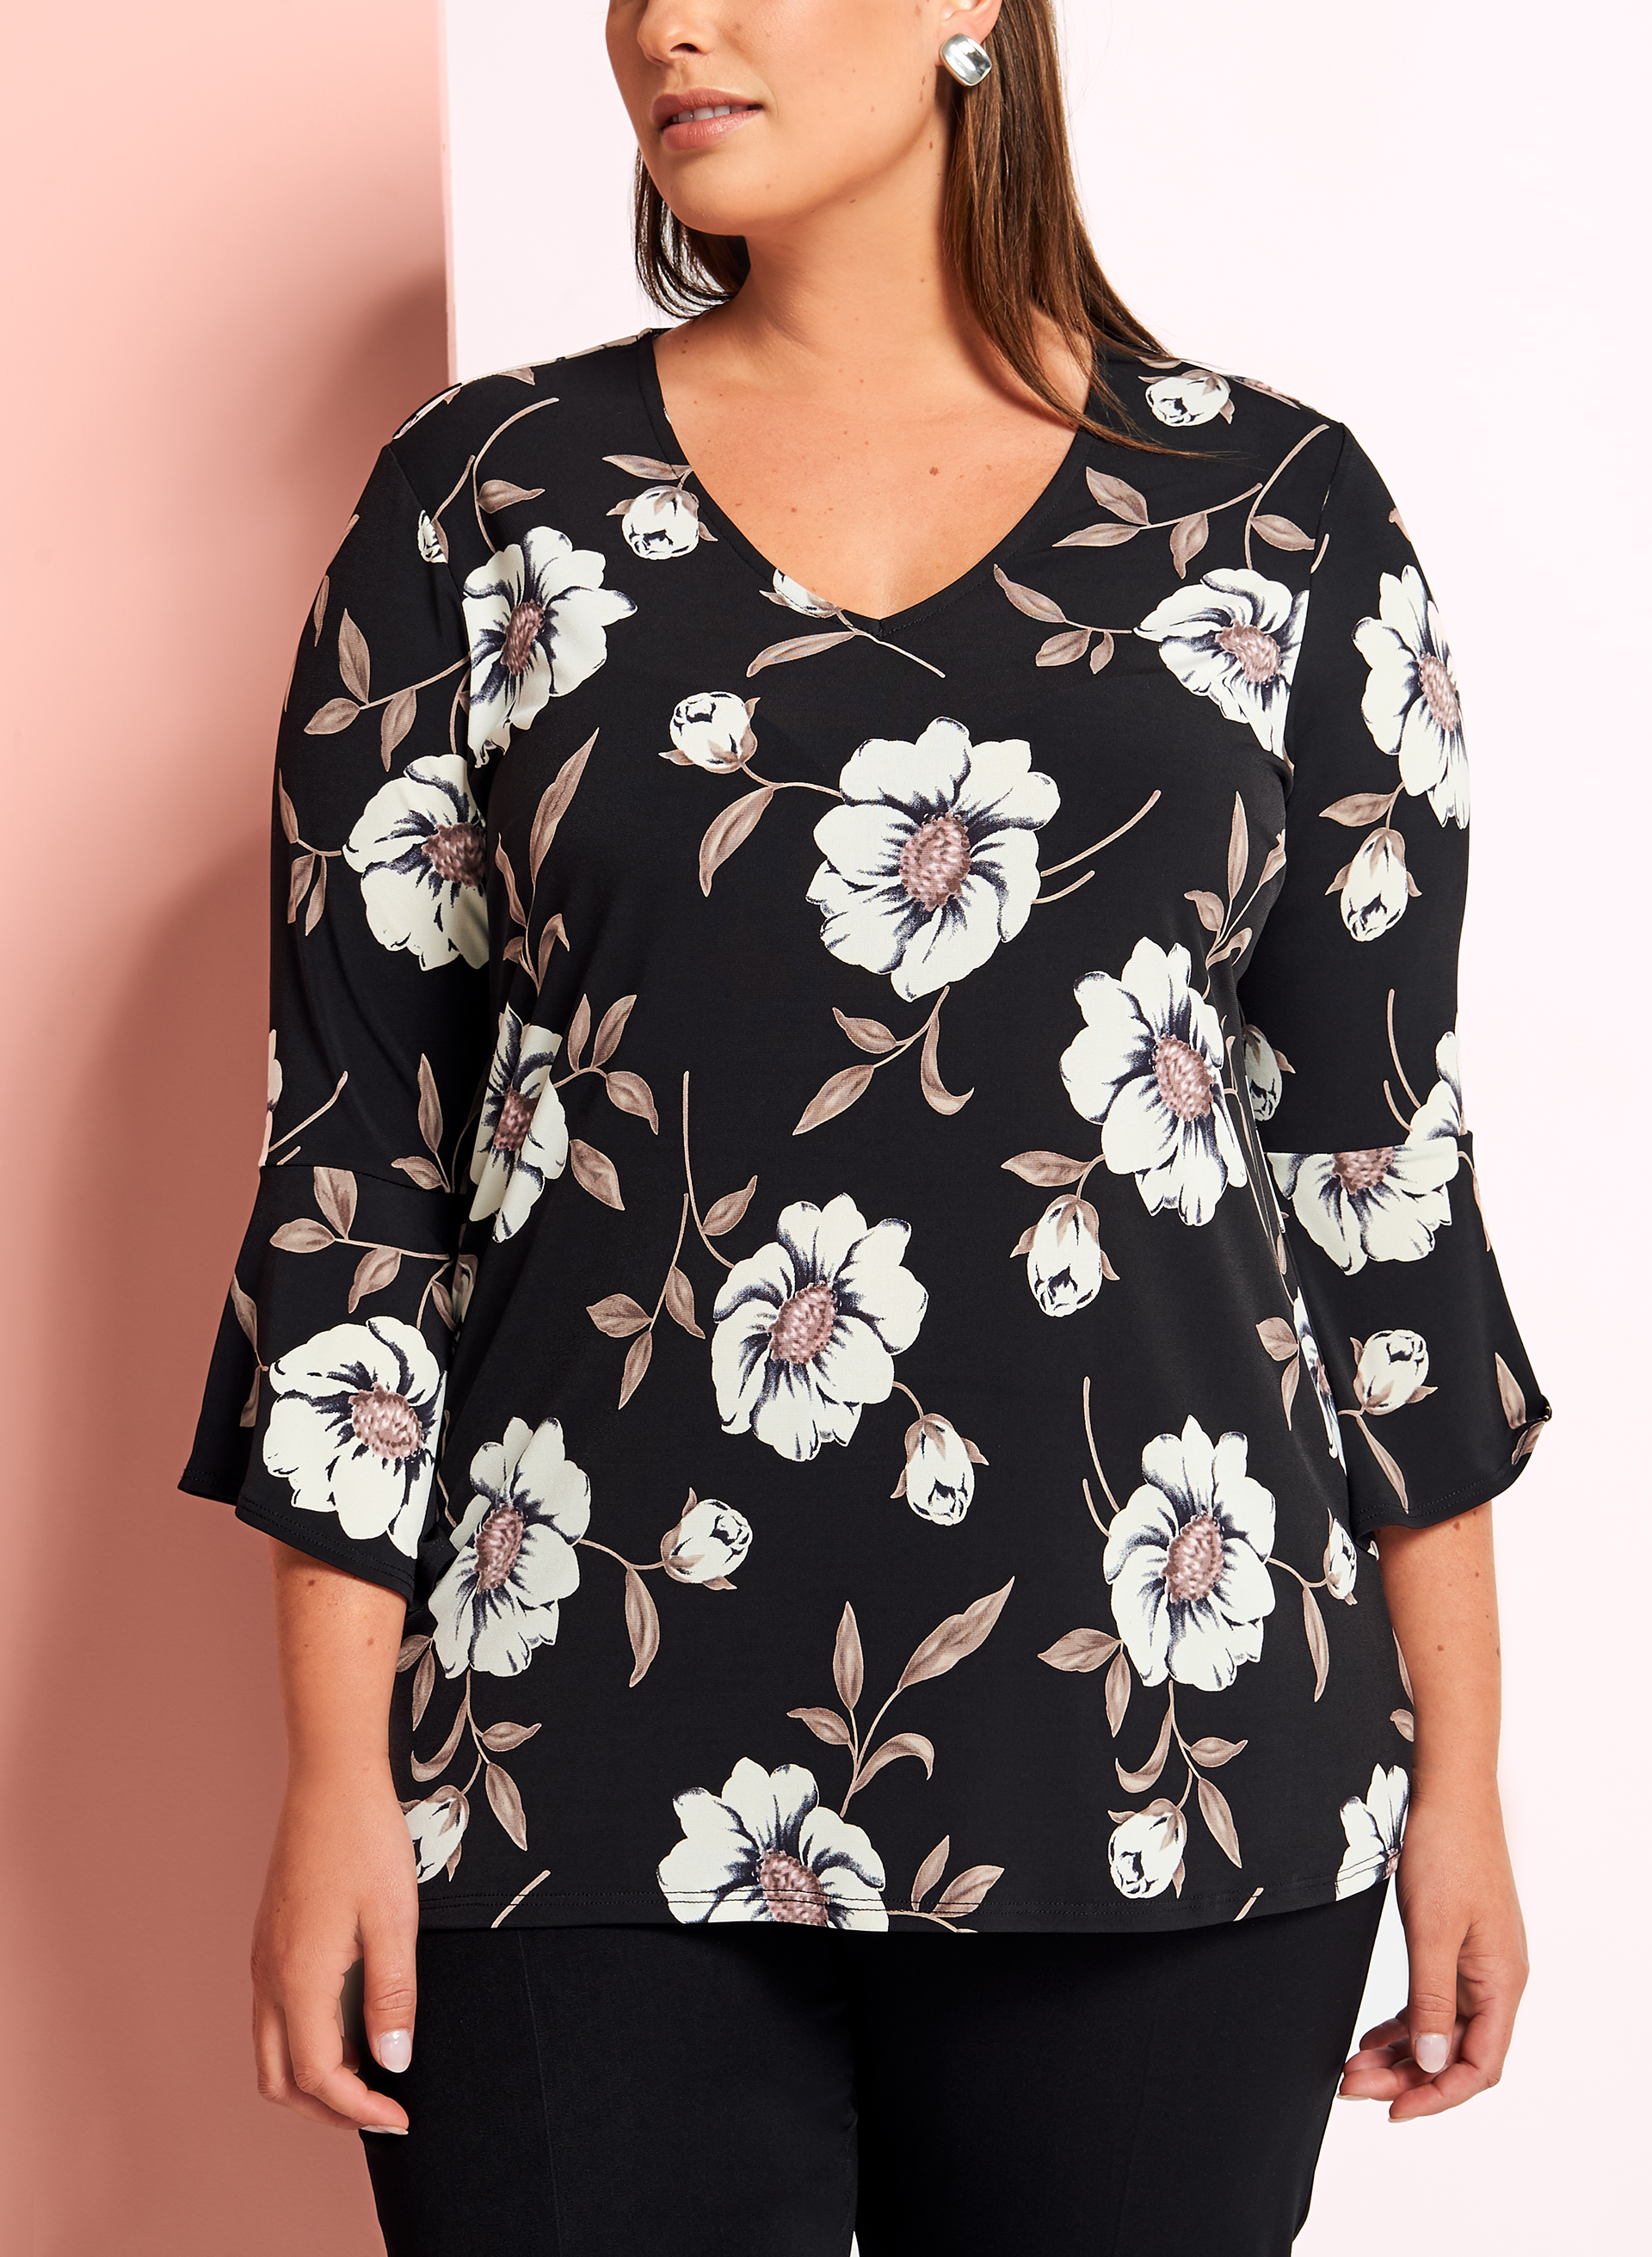 Floral Print 3/4 Bell Sleeve Top